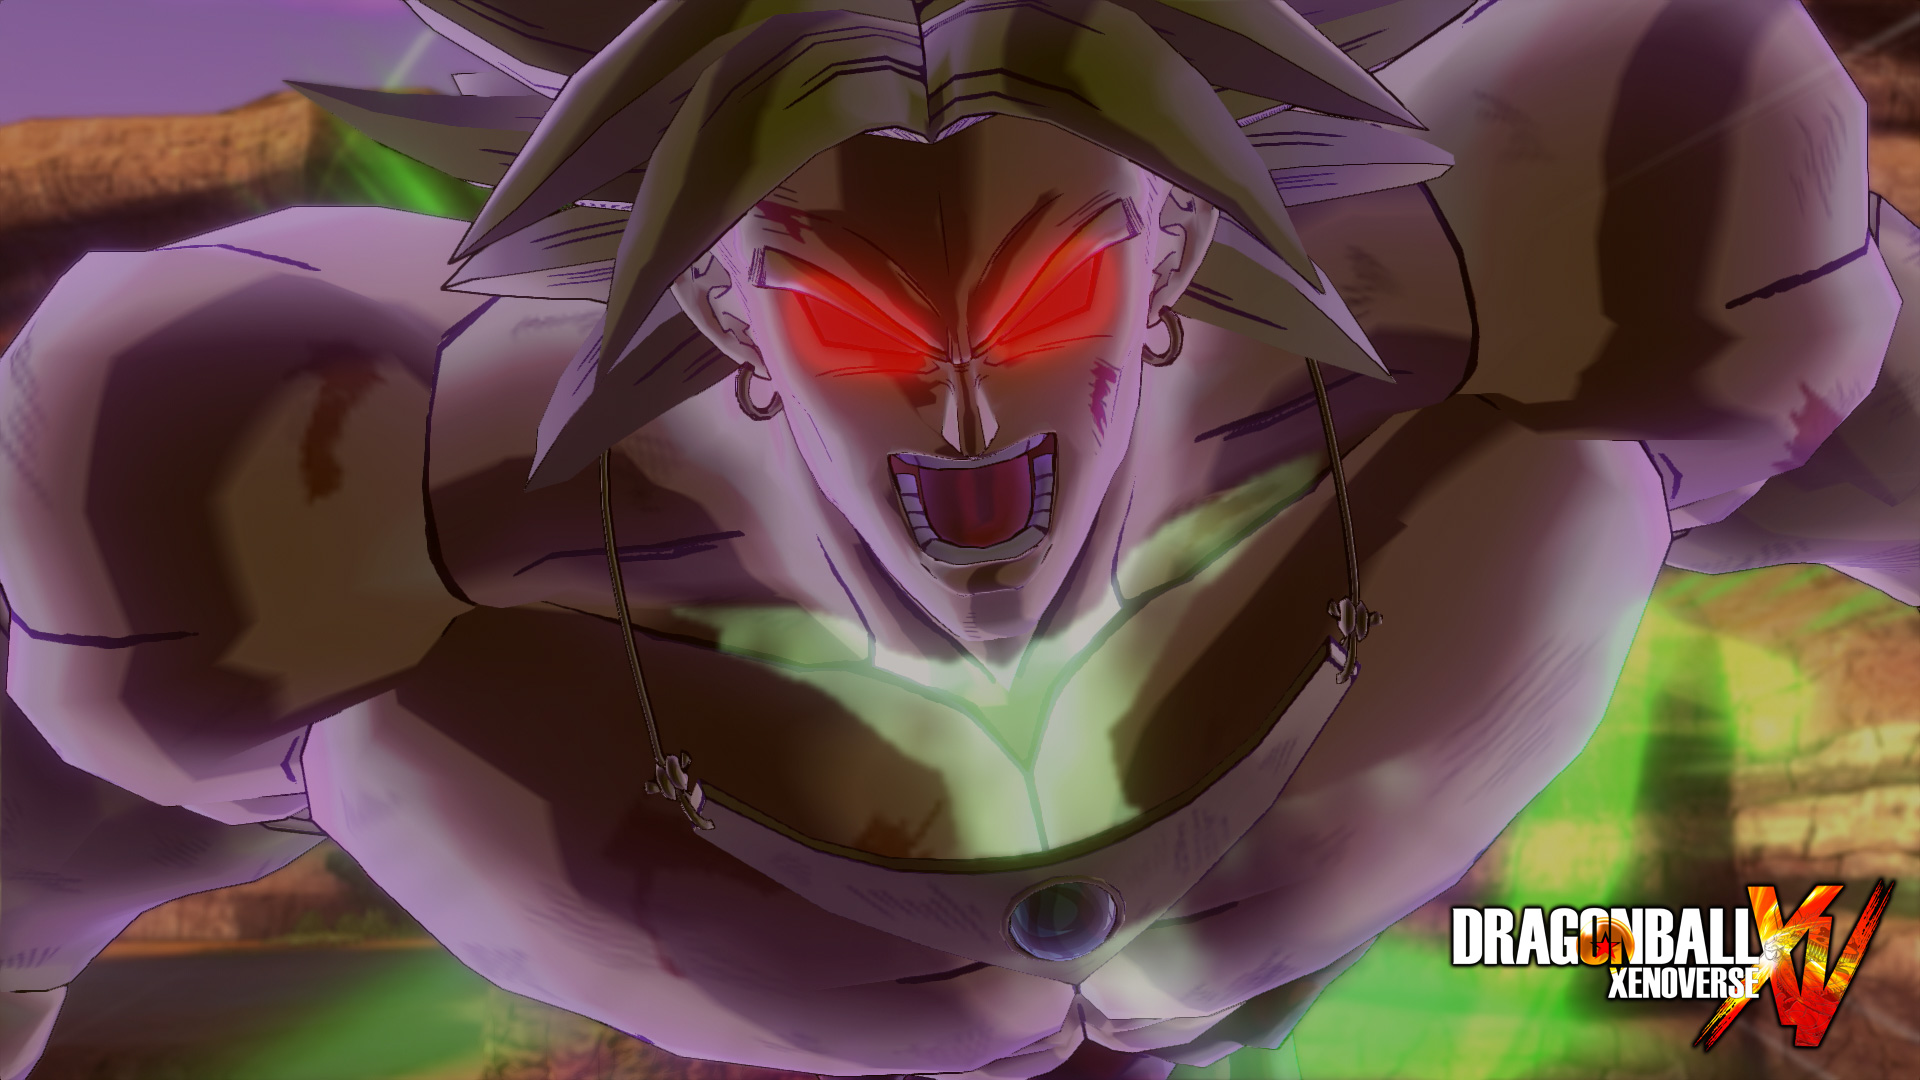 Dragon-Ball-Xenoverse-Evil-Broly-Screenshot-6